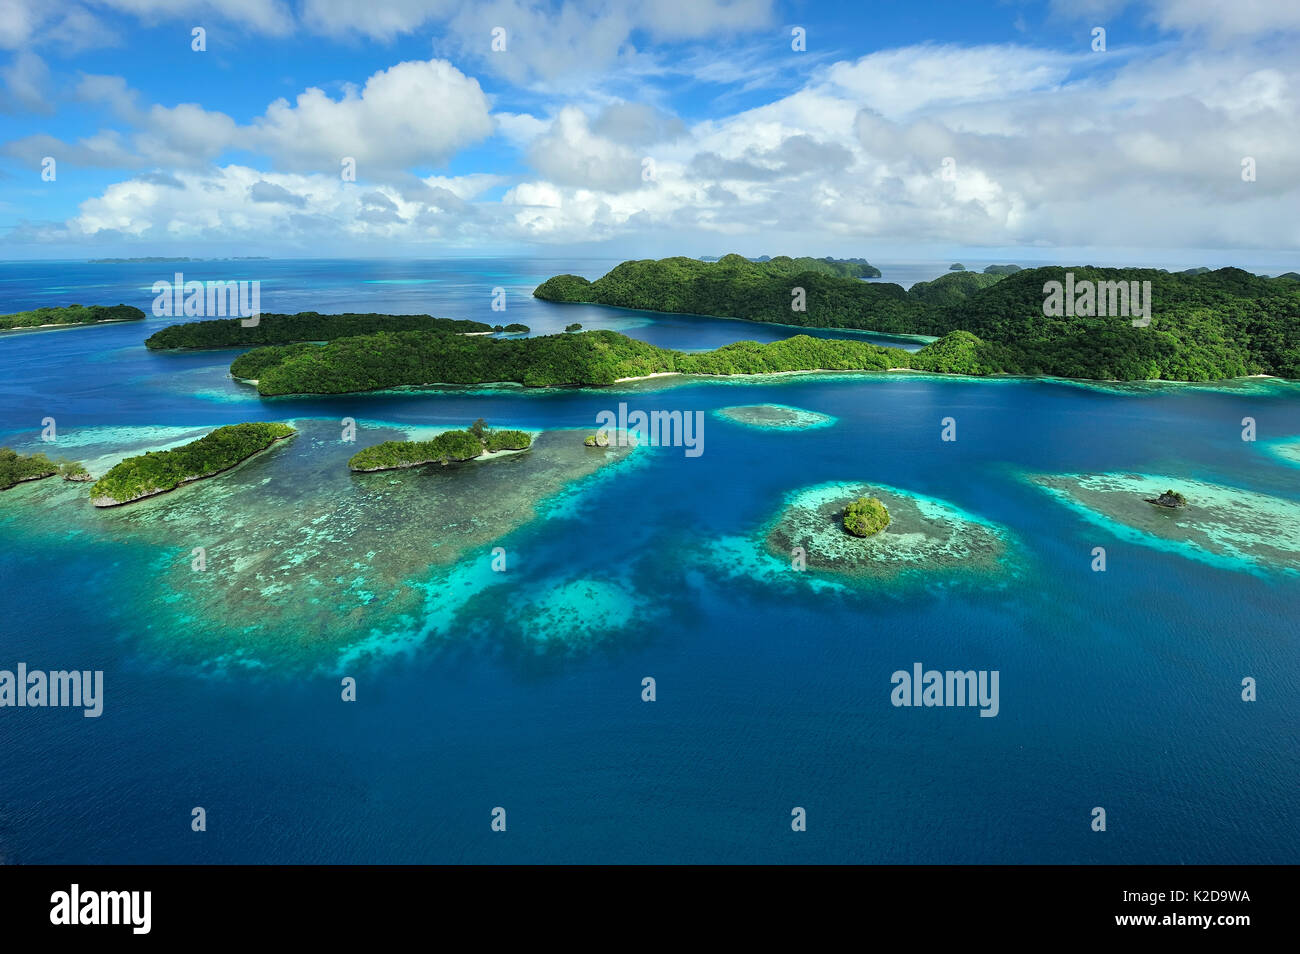 Aerial view of Palau and associated tropical islands, Philippine Sea Stock Photo